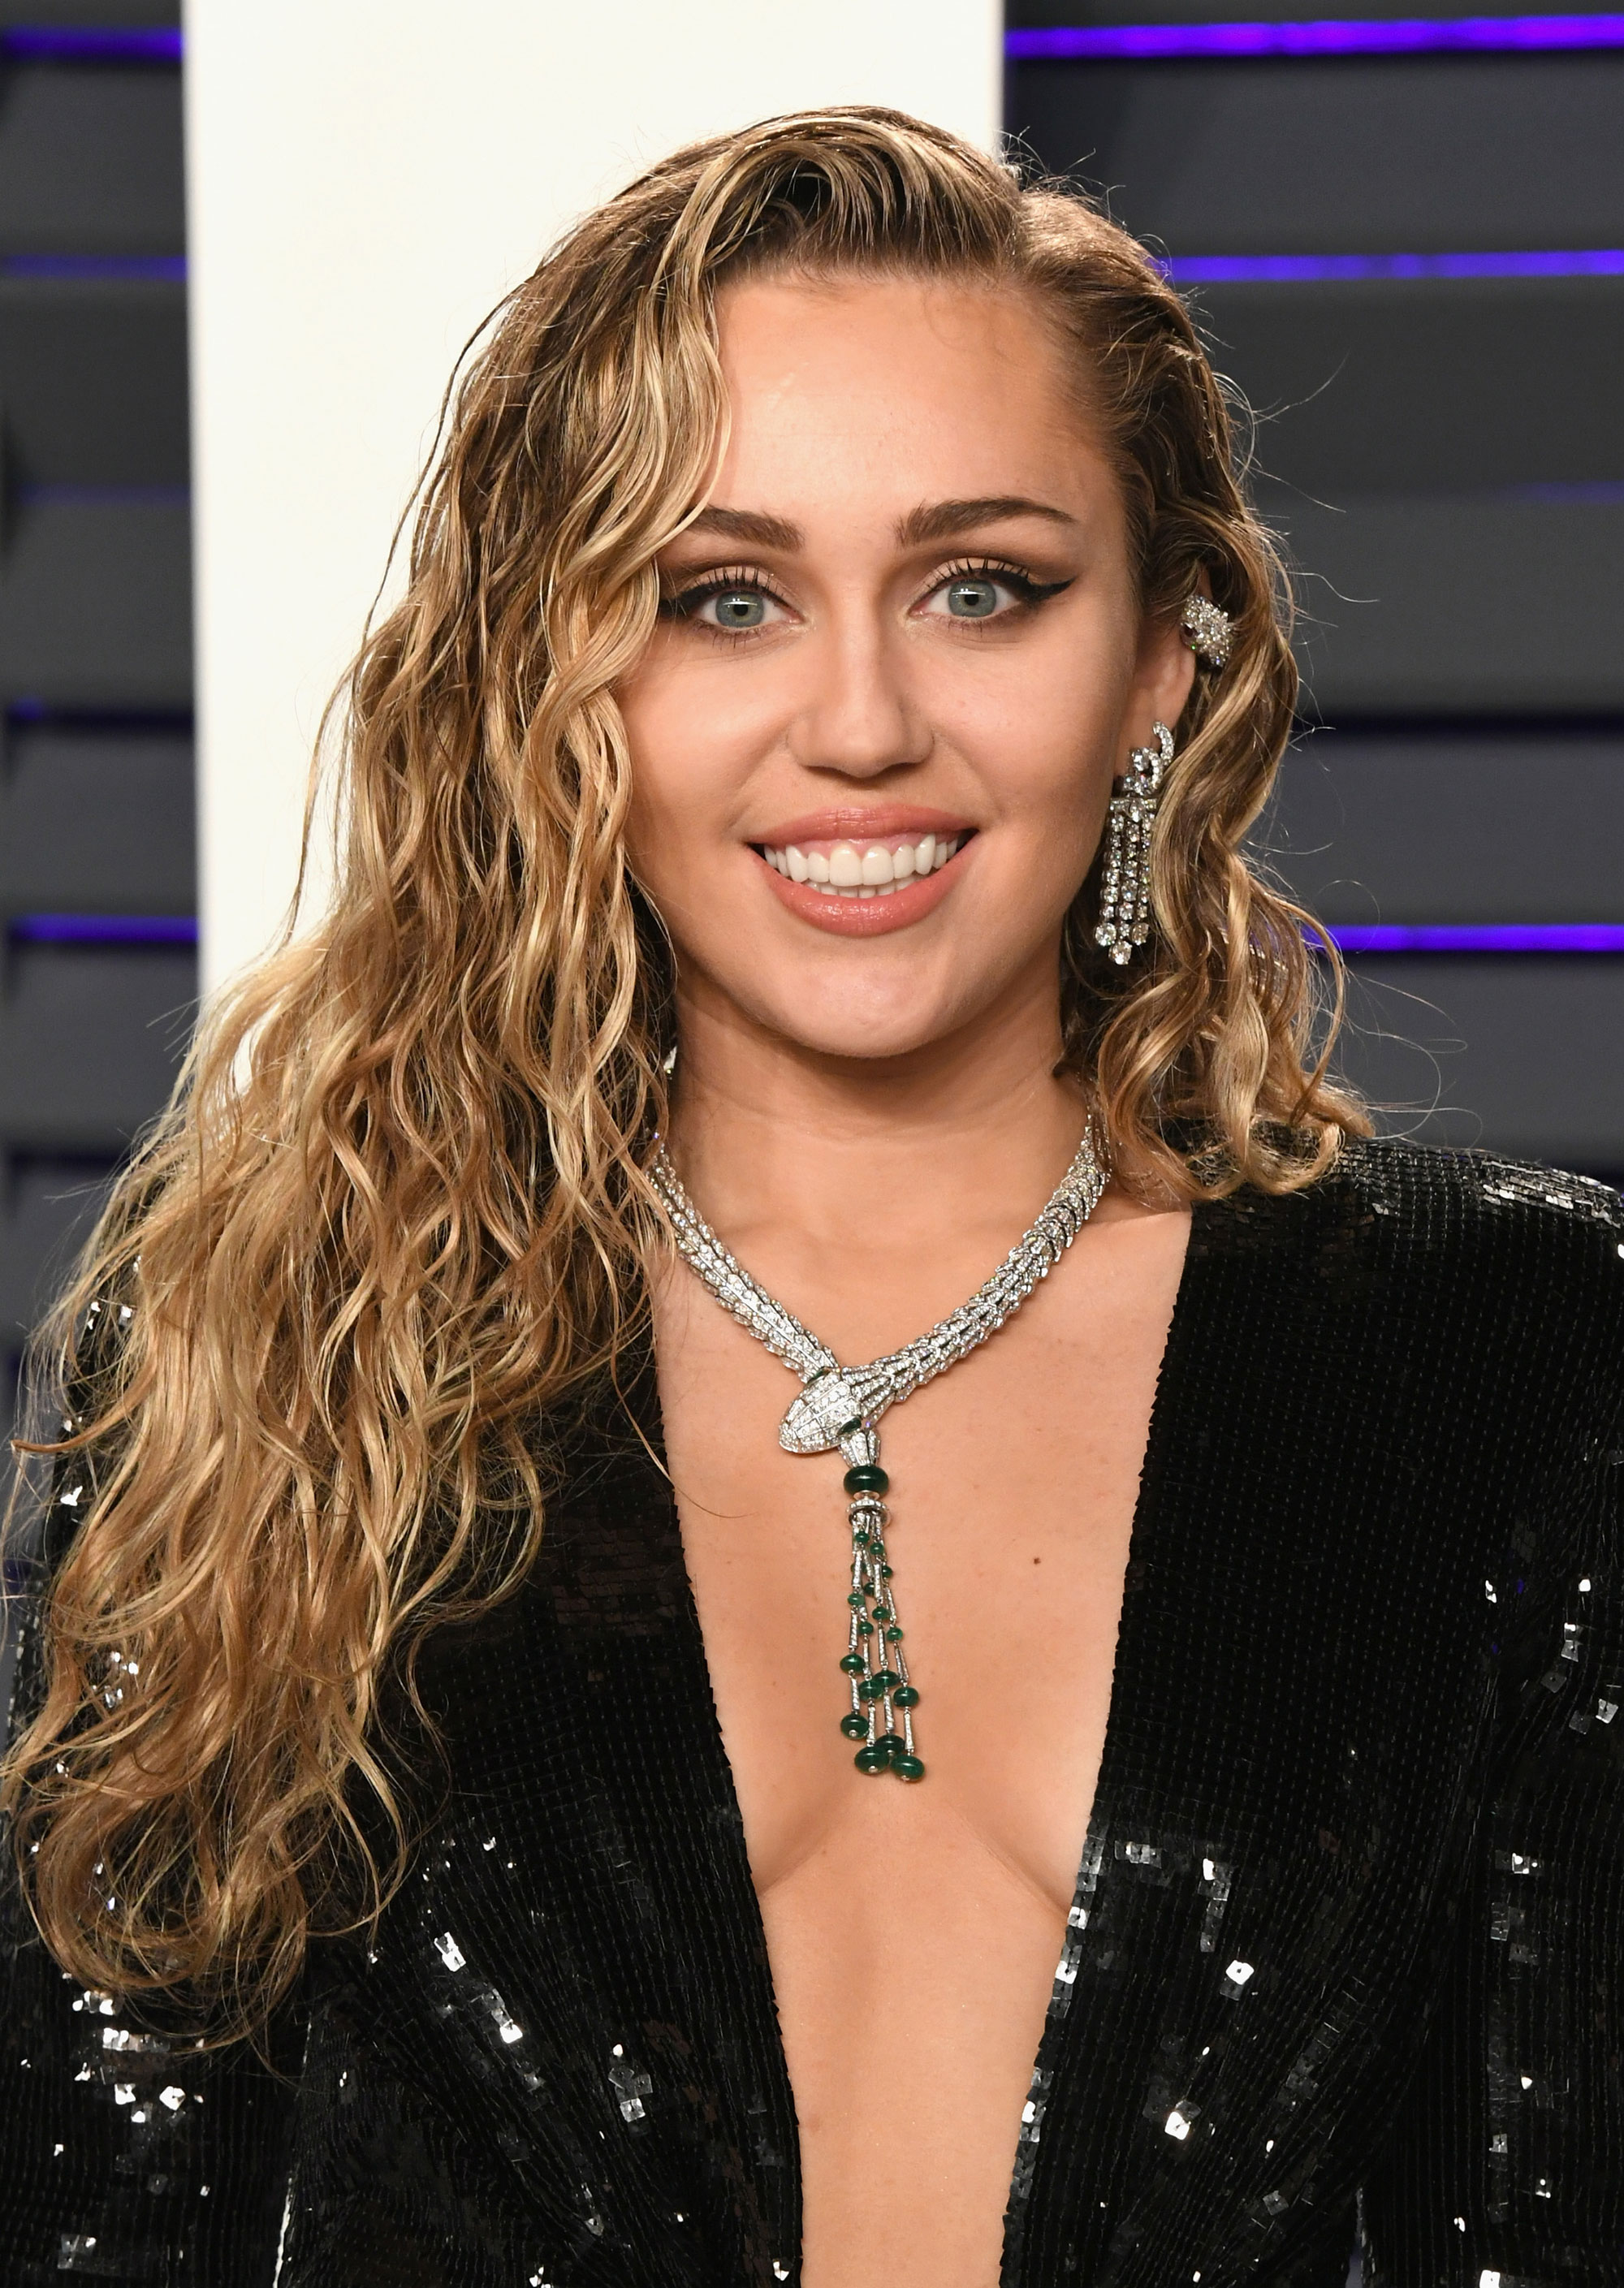 Miley Cyrus Responded to That Video of Her Being Groped by a Stranger